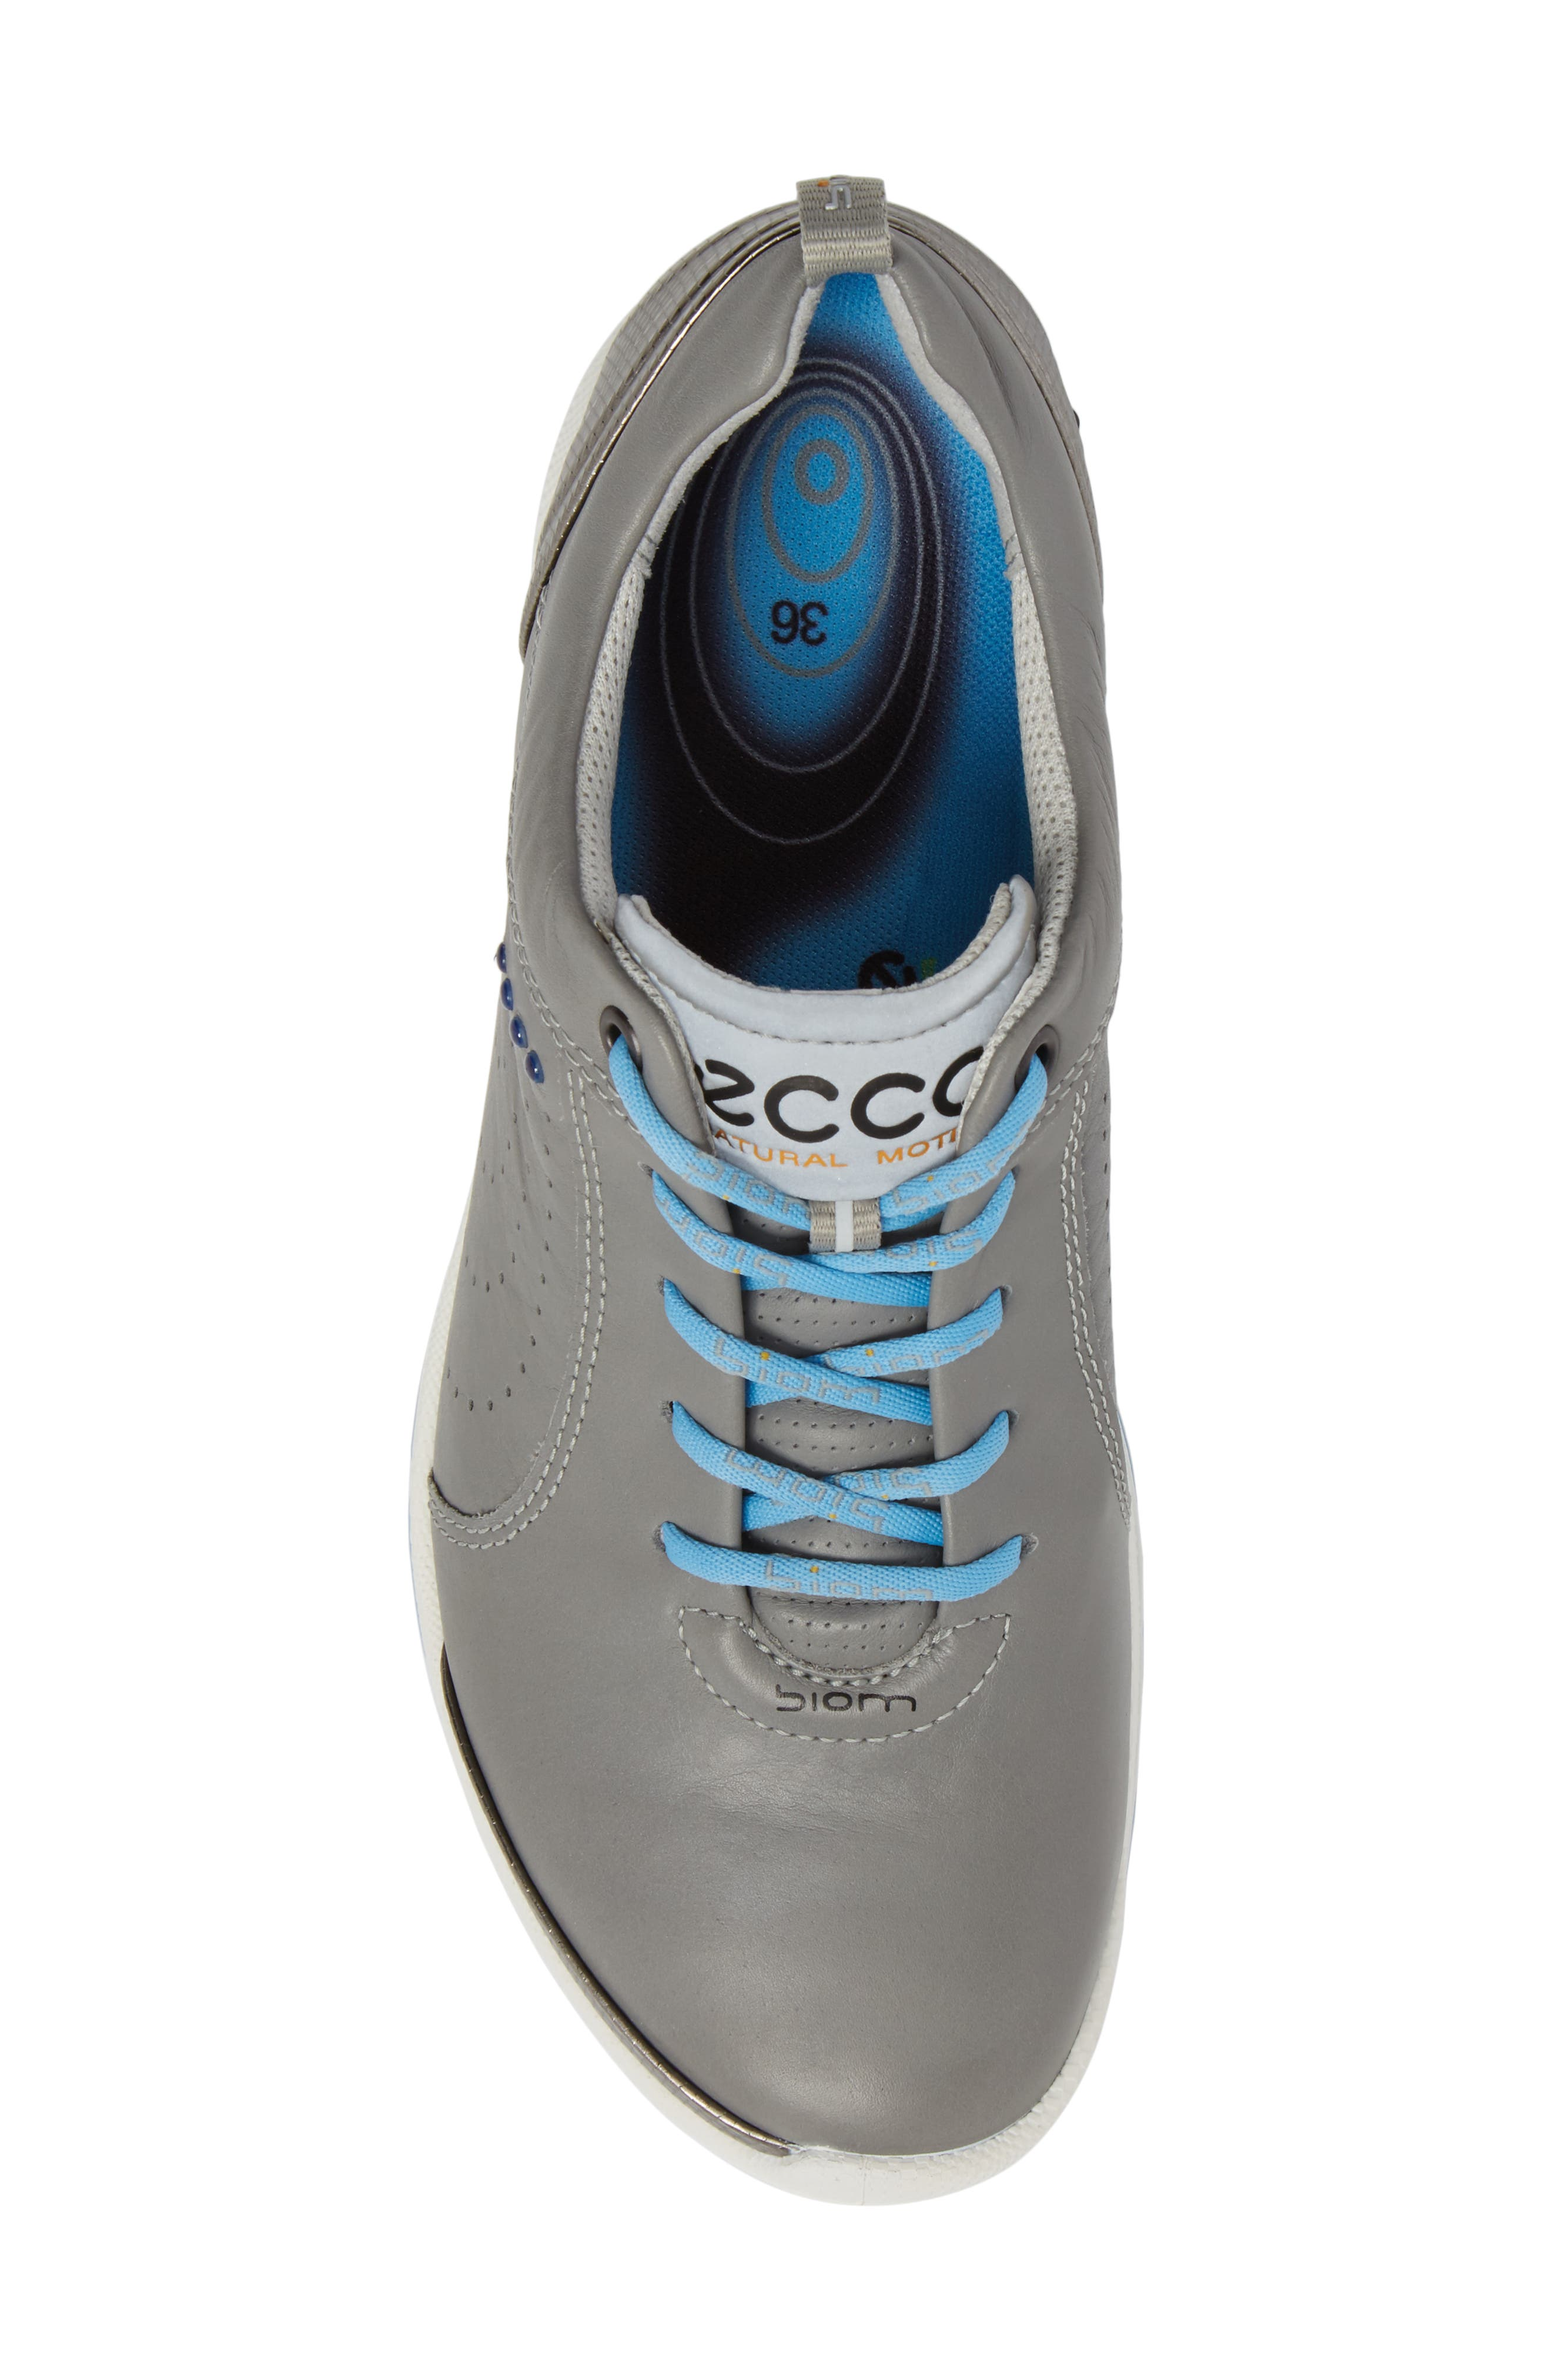 BIOM 2 Waterproof Golf Shoe,                             Alternate thumbnail 5, color,                             Wild Dove/ Sky Blue Leather